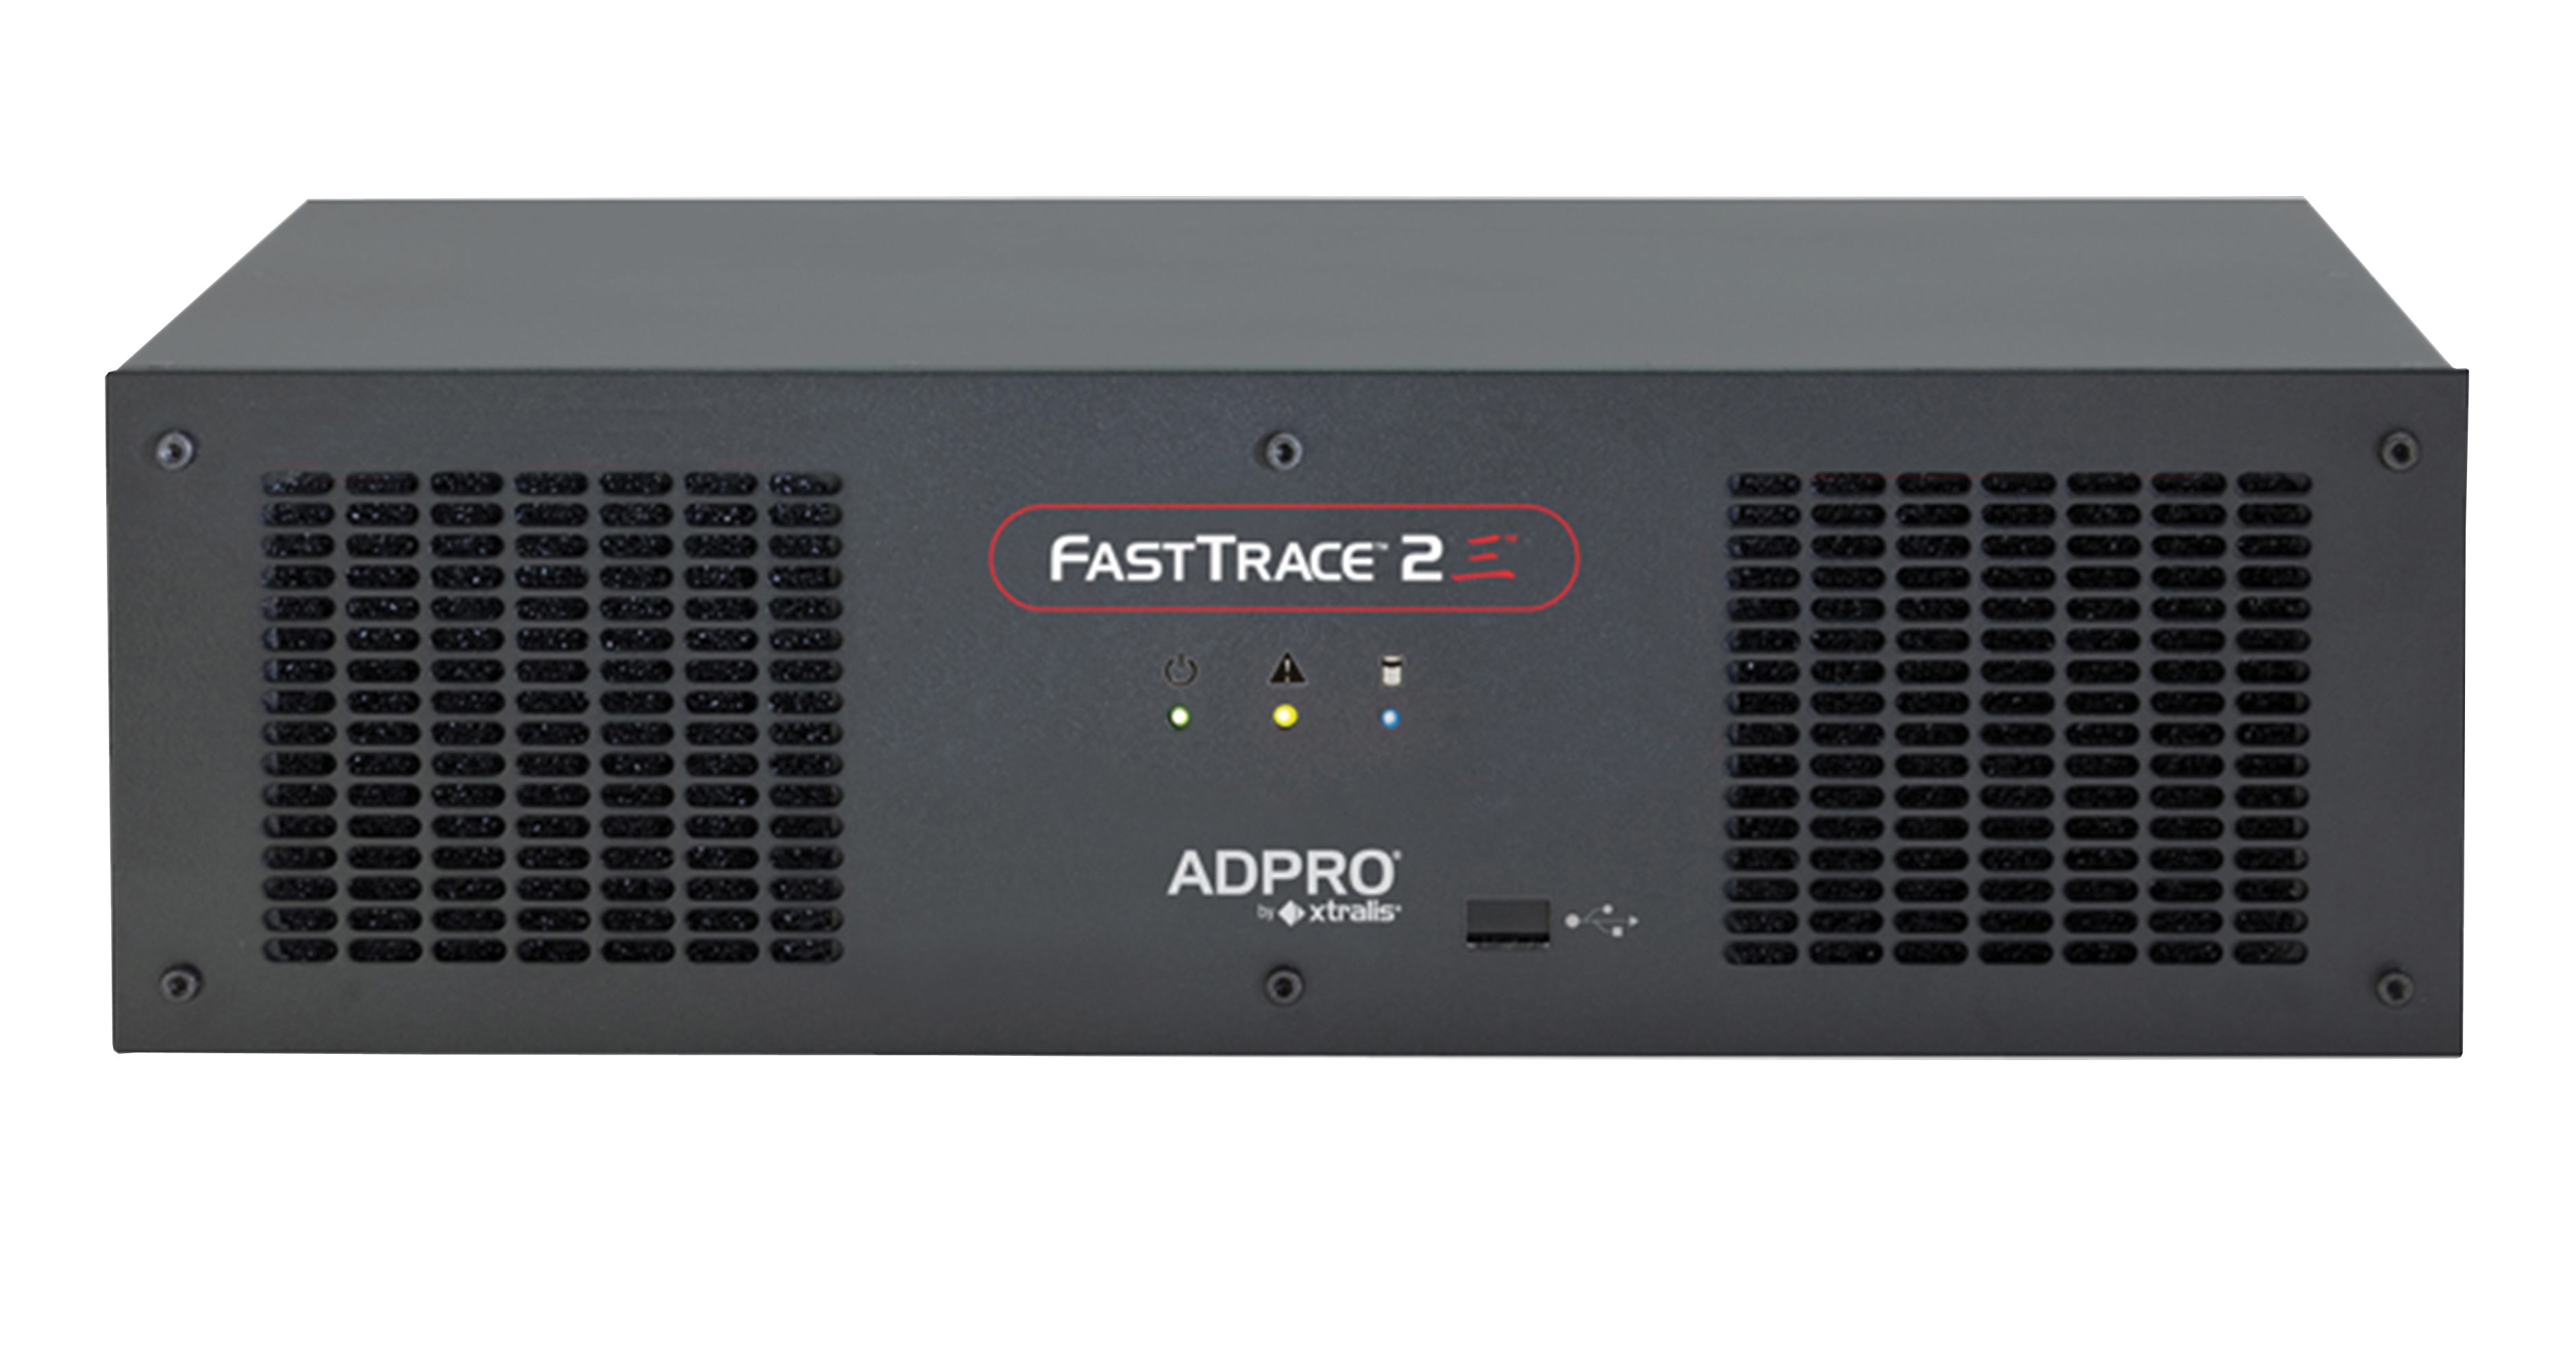 ADPRO FastTrace 2E NVR+ - 20 Analogueue Channels